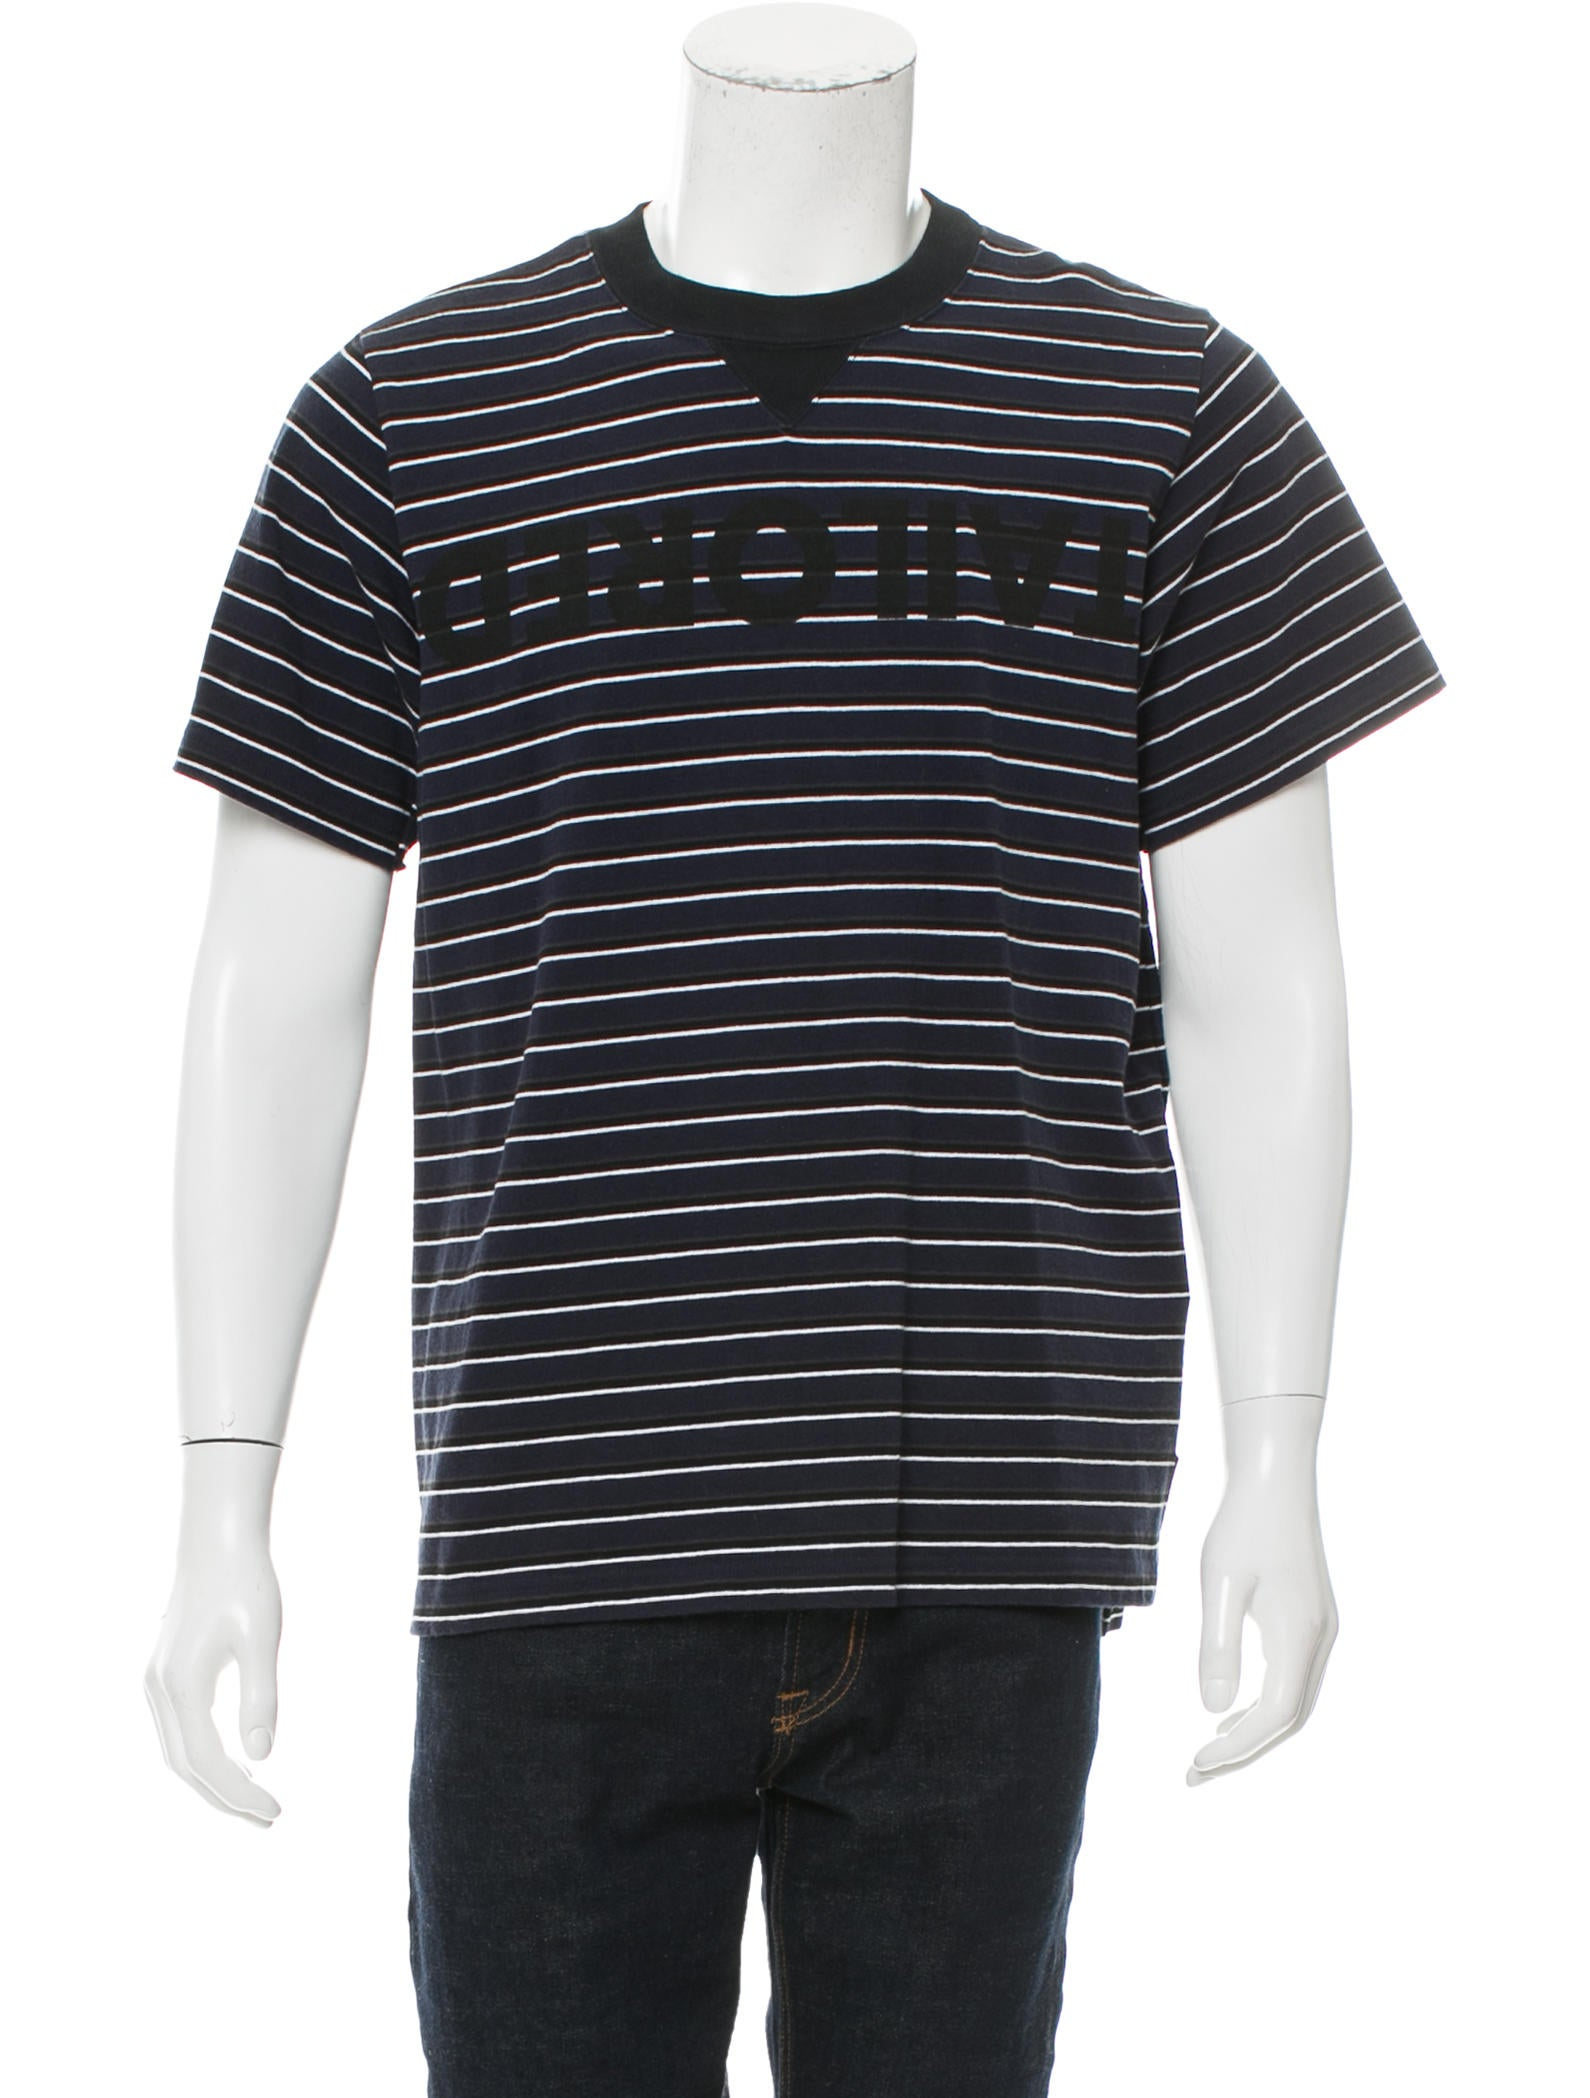 Sacai tailored striped t shirt clothing ws121763 the for Tailored t shirts online